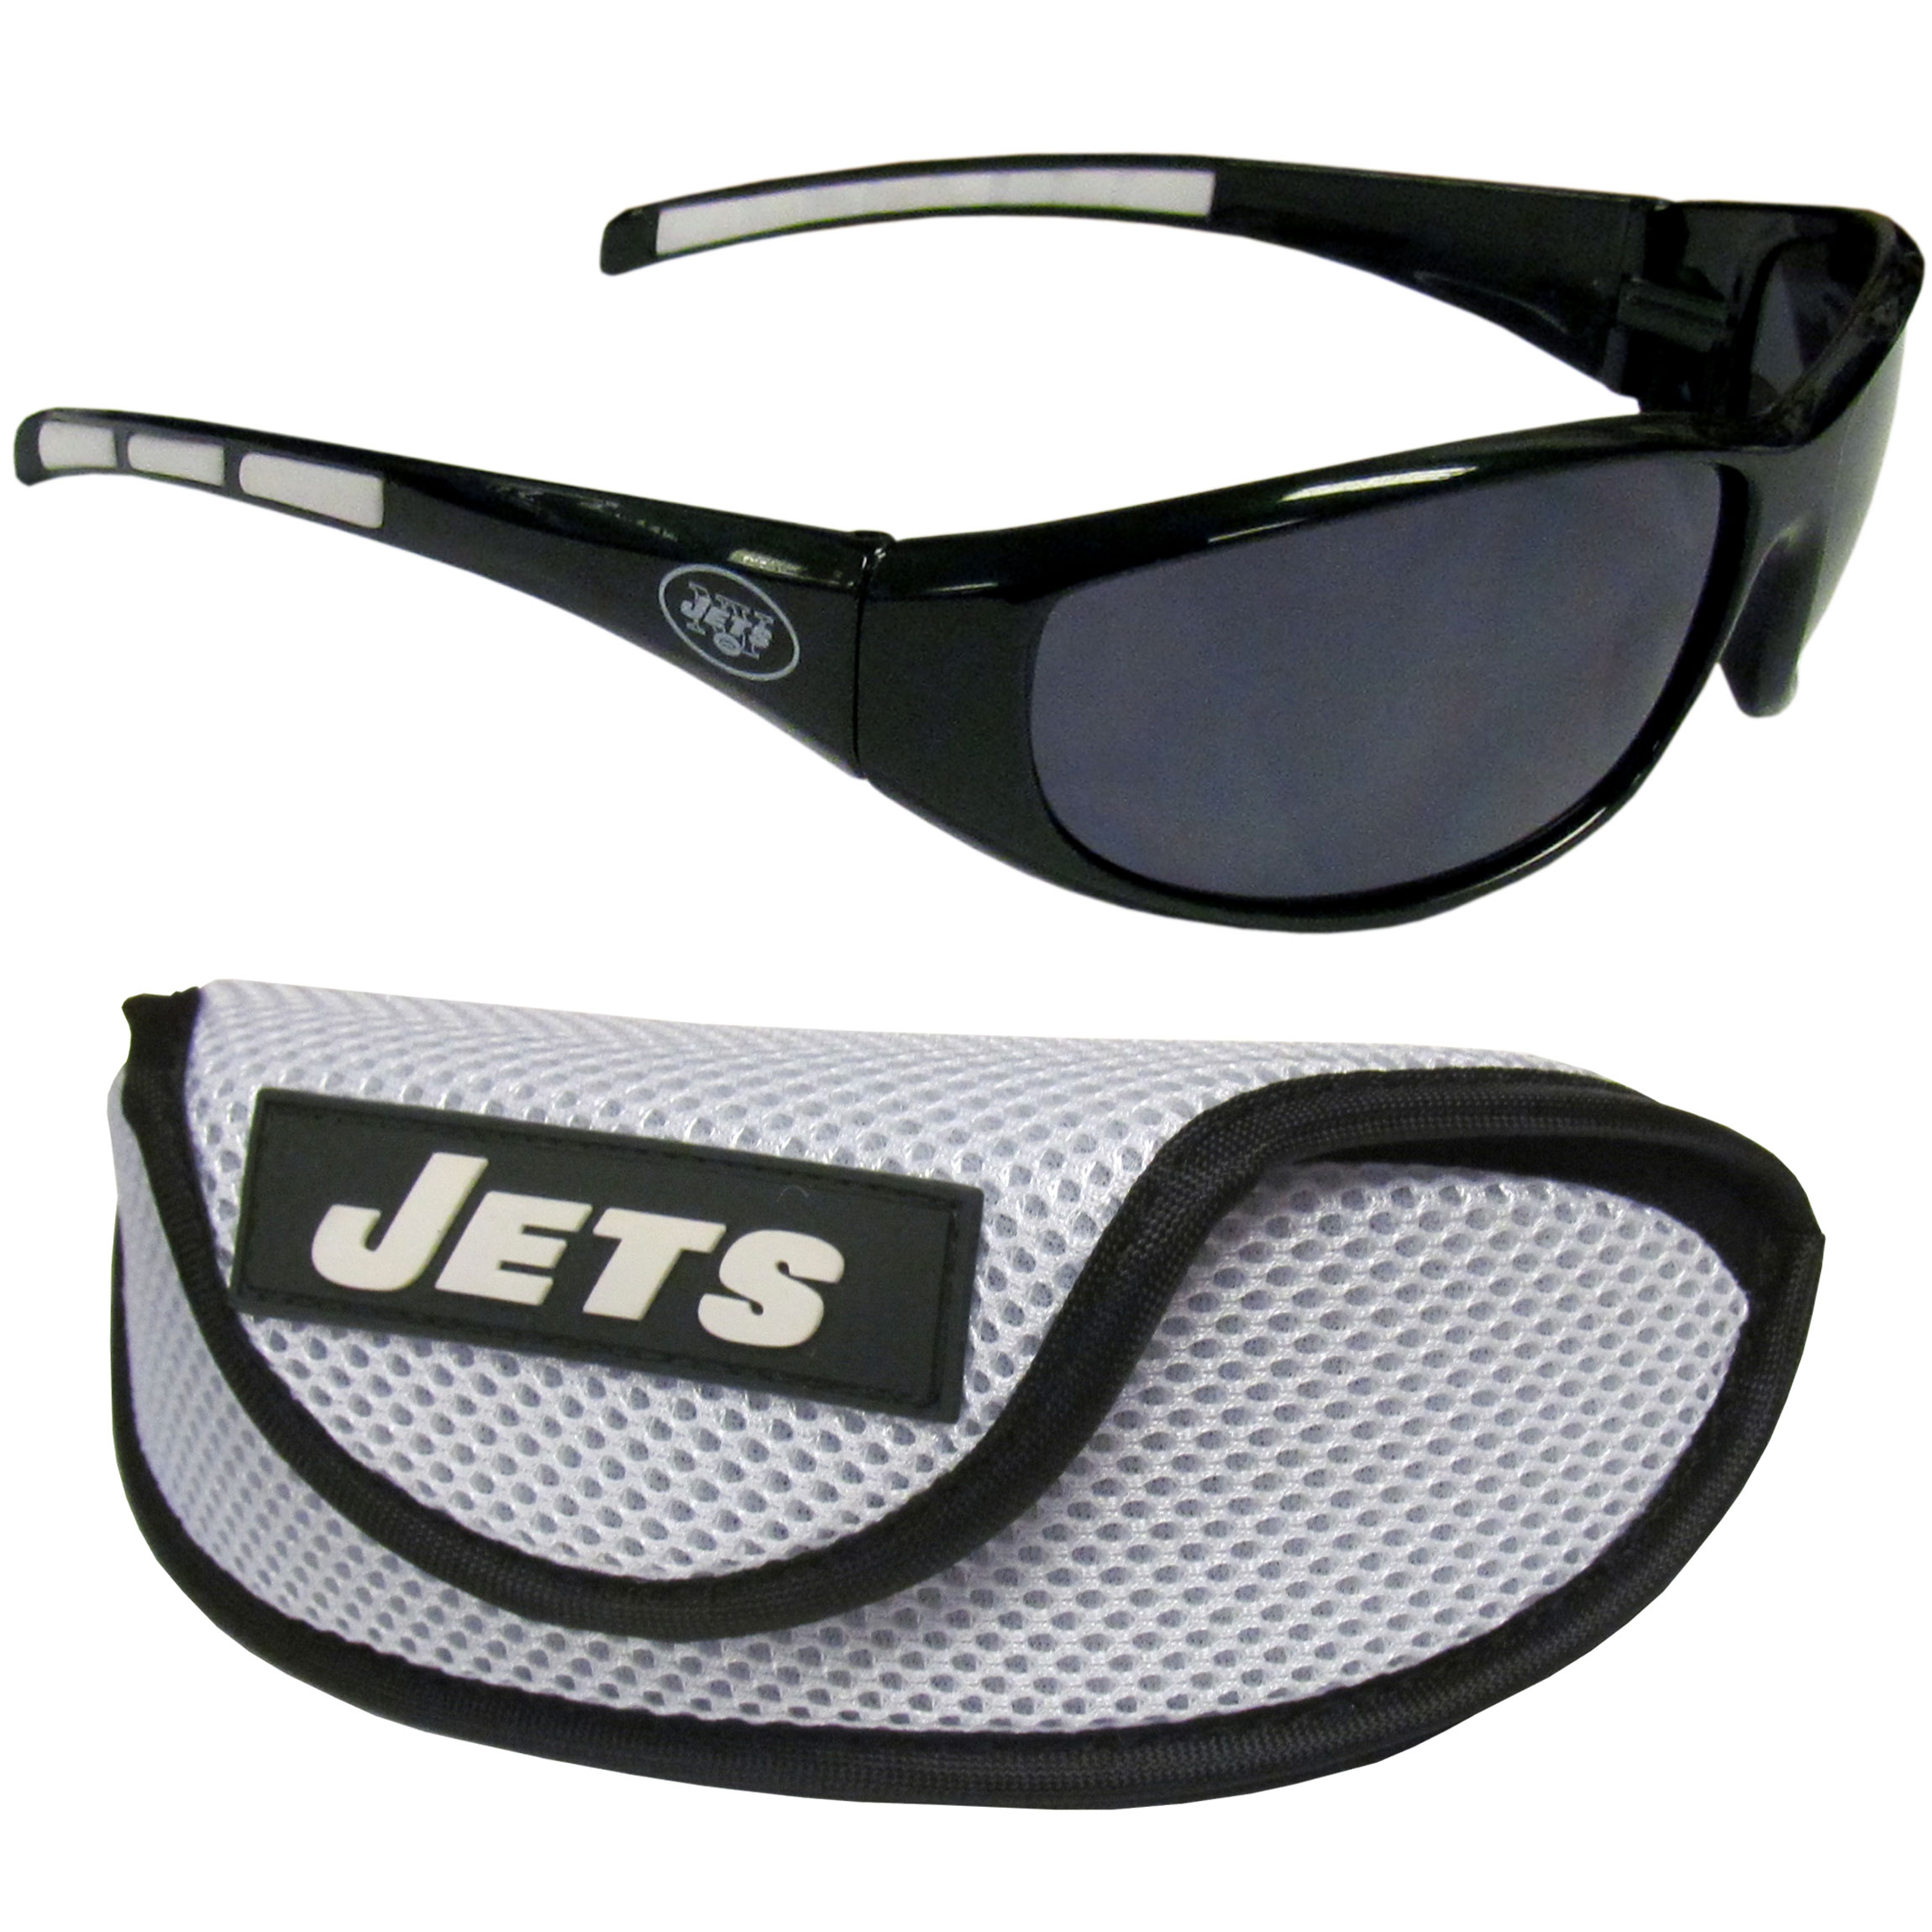 New York Jets Wrap Sunglass and Case Set - This great set includes a high quality pair of  New York Jets wrap sunglasses and sport carrying case.